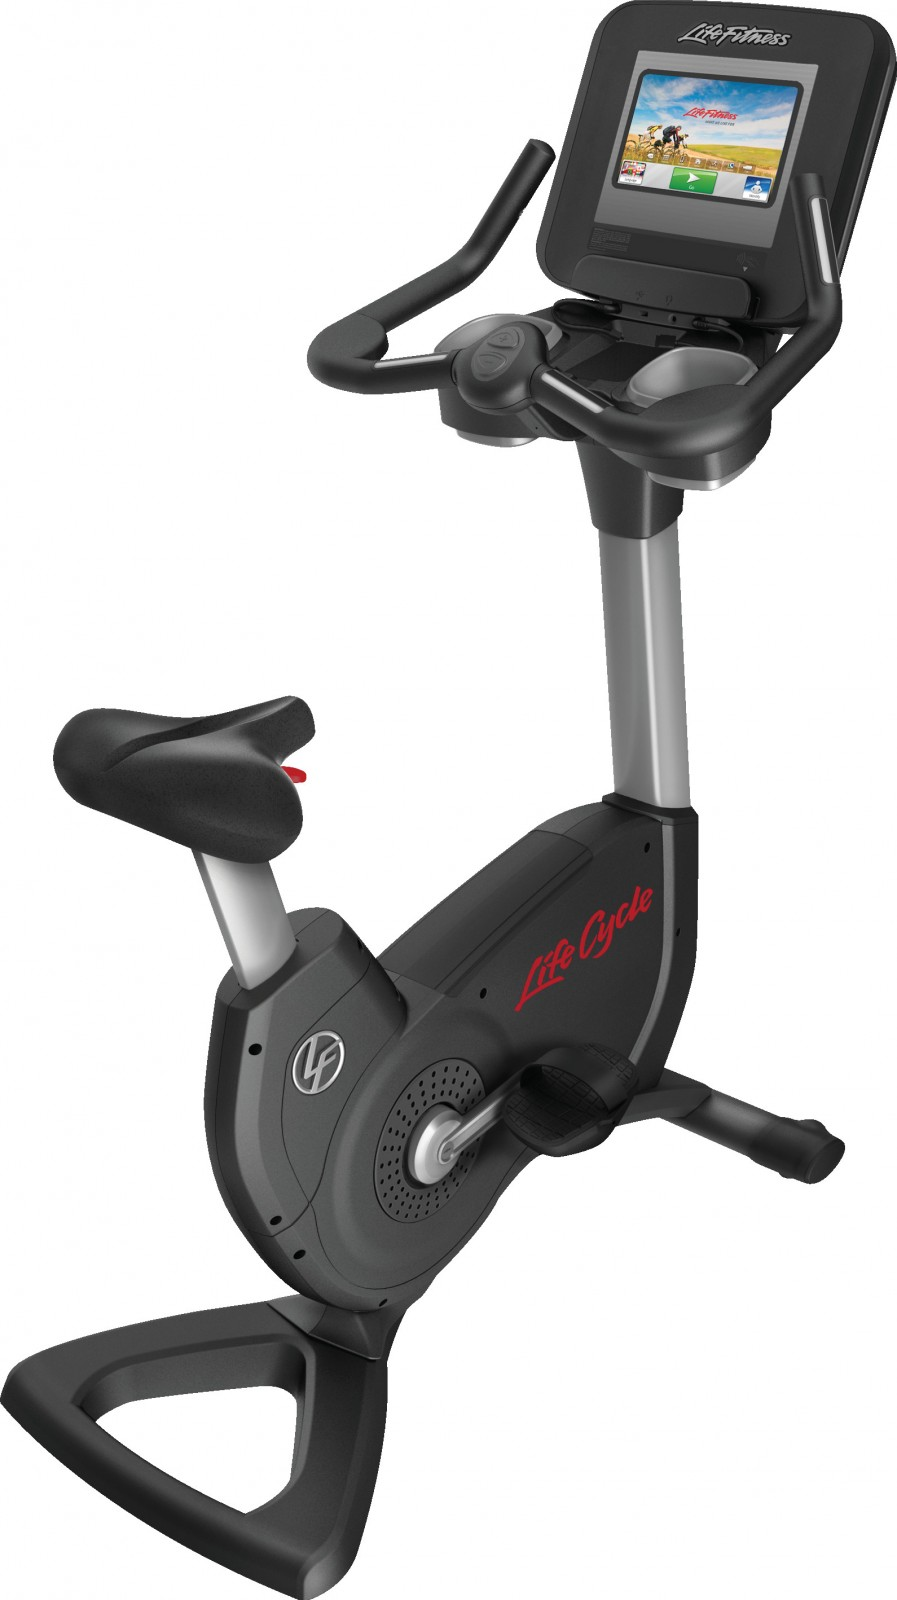 life fitness ergometer platinum club series discover si upright bike wifi sport tiedje. Black Bedroom Furniture Sets. Home Design Ideas